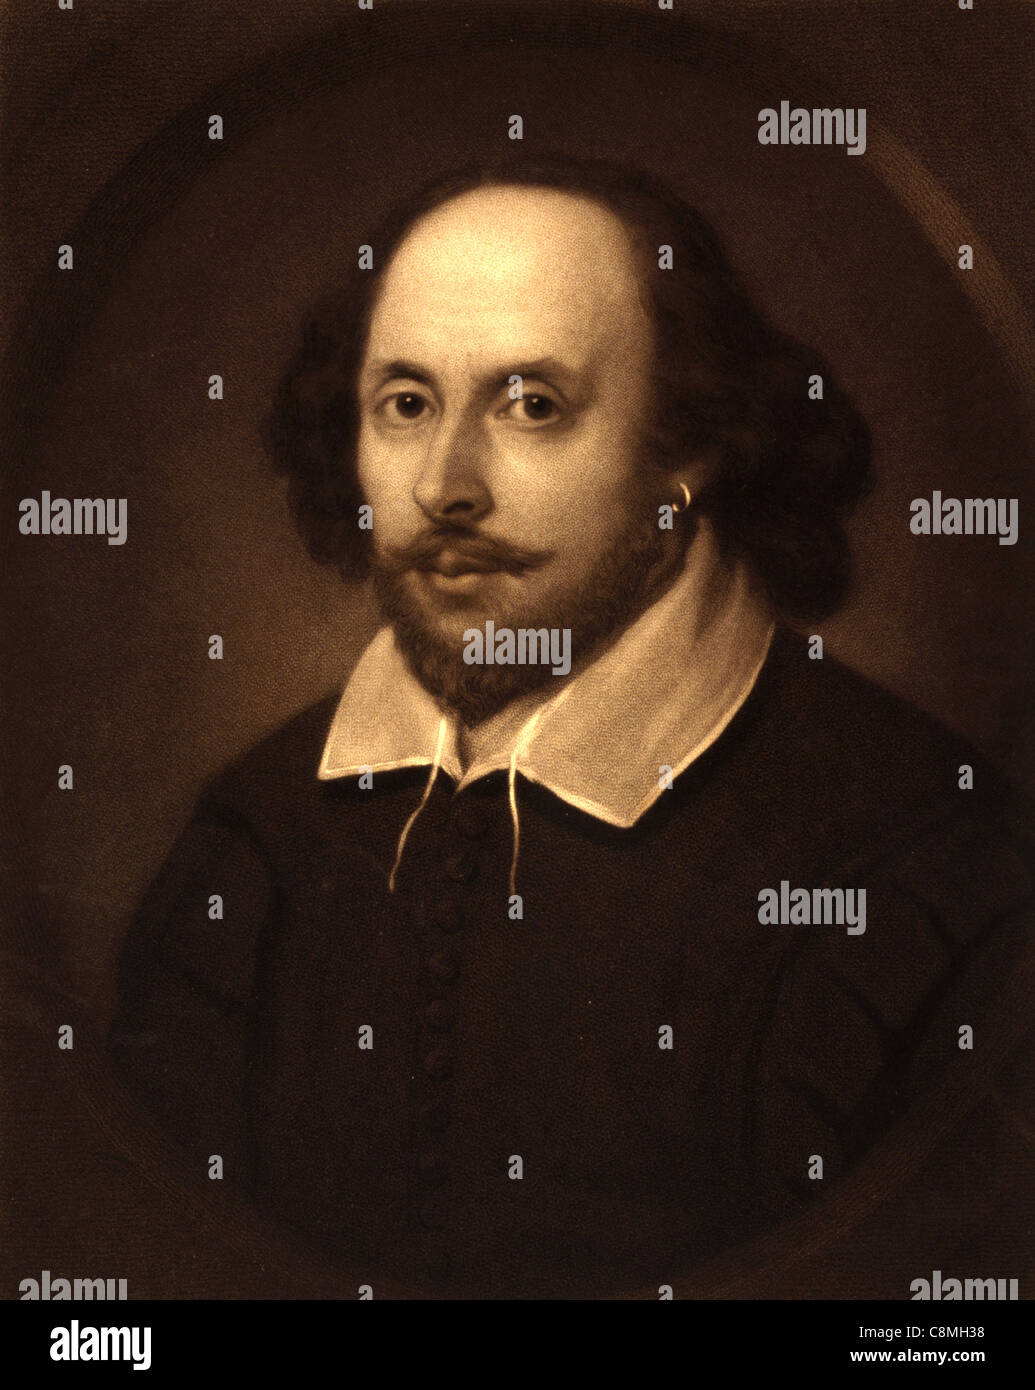 William Shakespeare, inglese poeta e drammaturgo. Ritratto di William Shakespeare Foto Stock